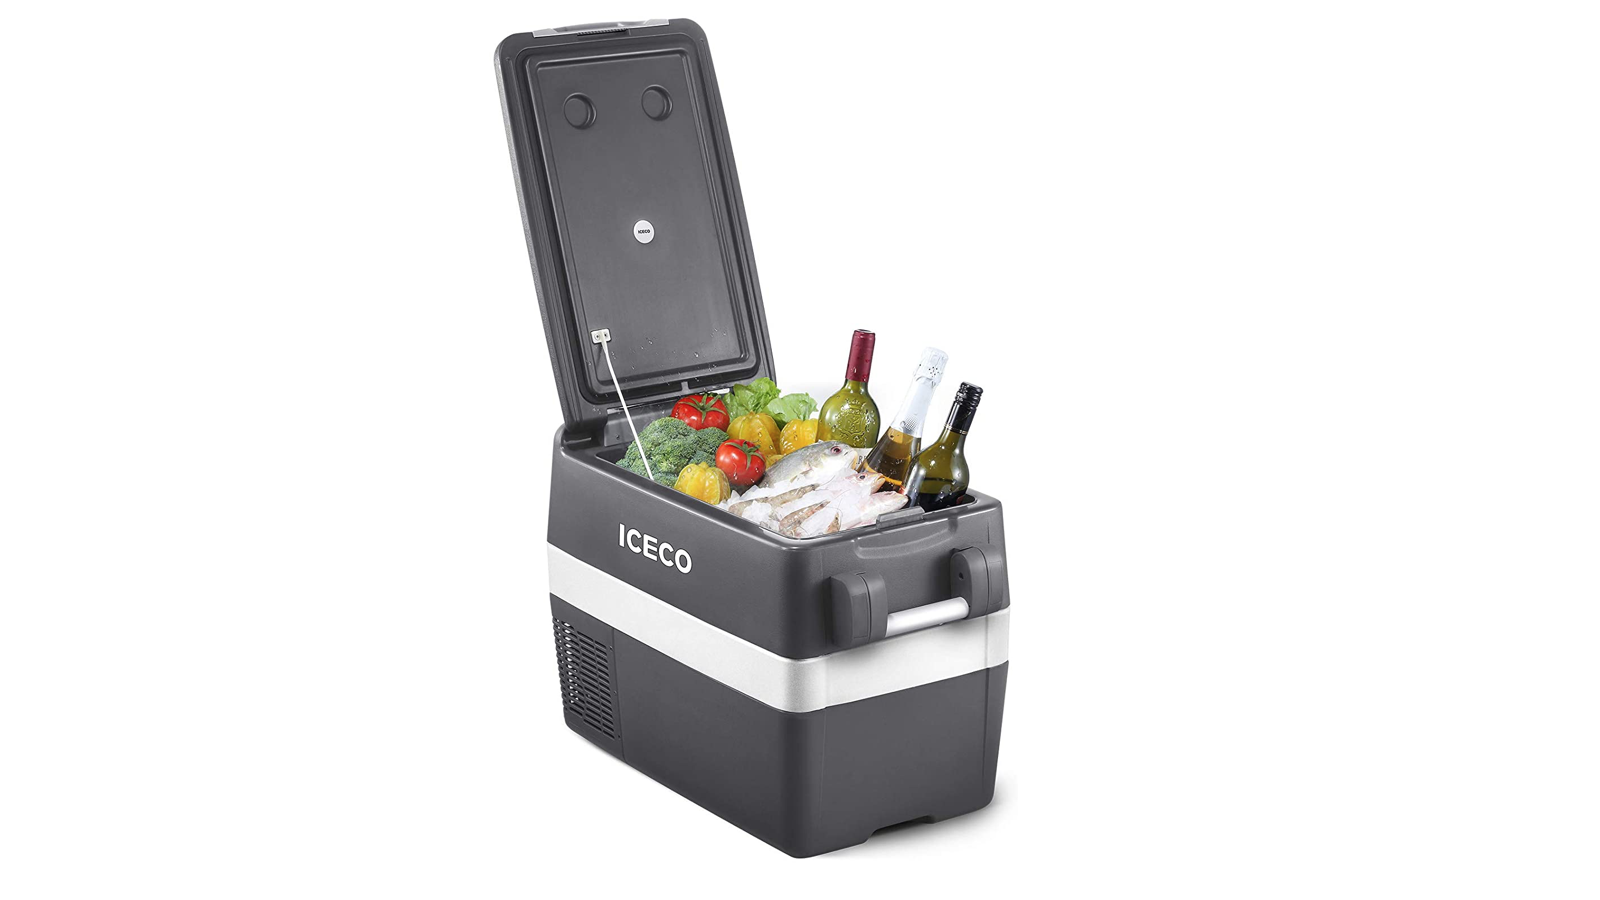 gray and white chest freezer with handles open to show vegetables and wine inside